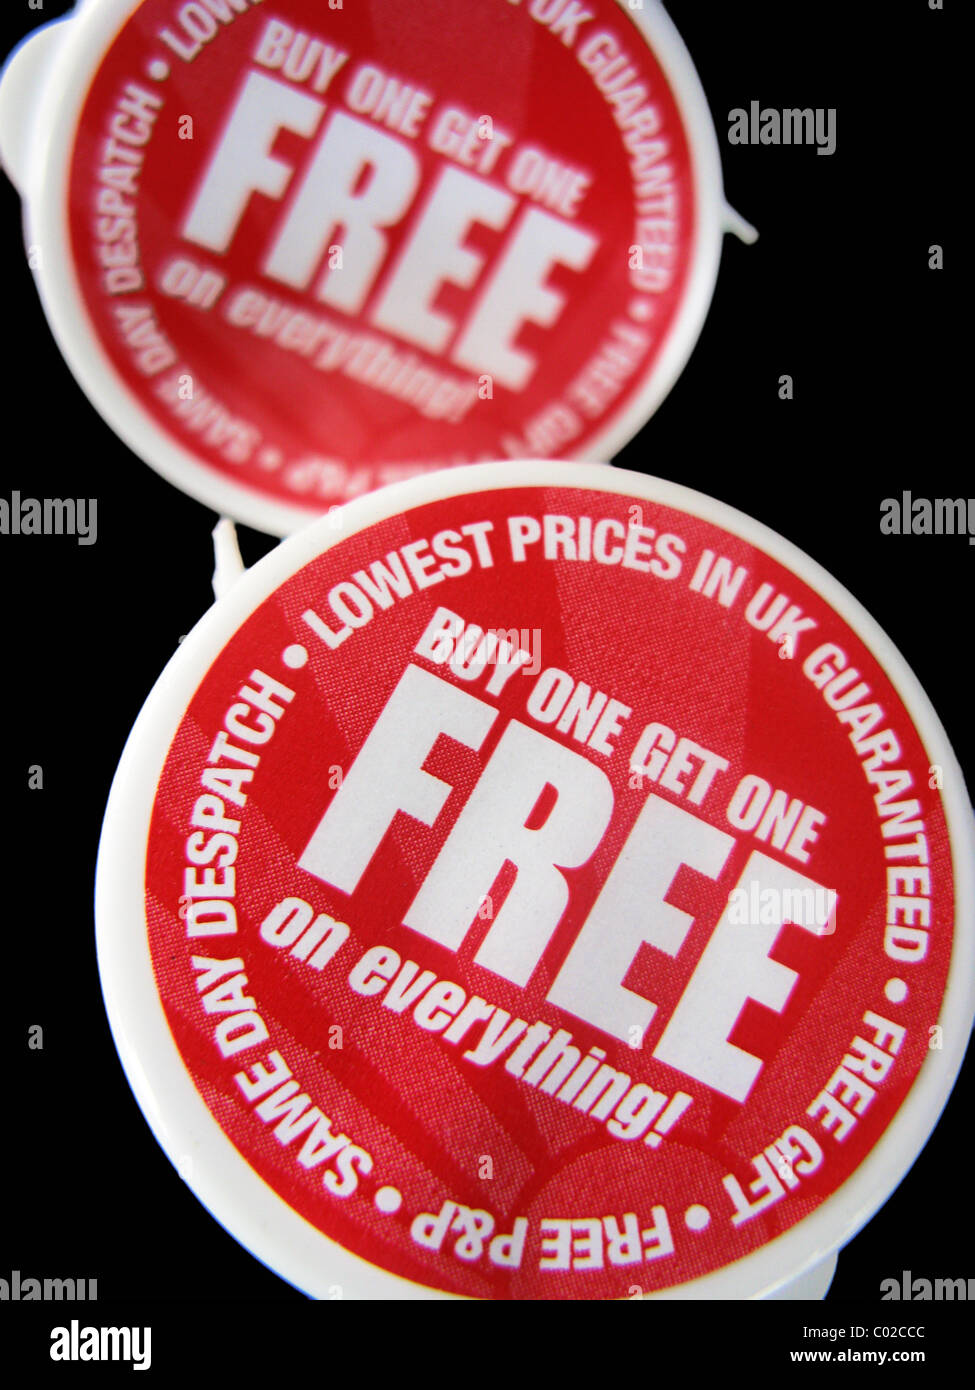 buy 1 get 1 free bargain on goods in a store Stock Photo: 34474396